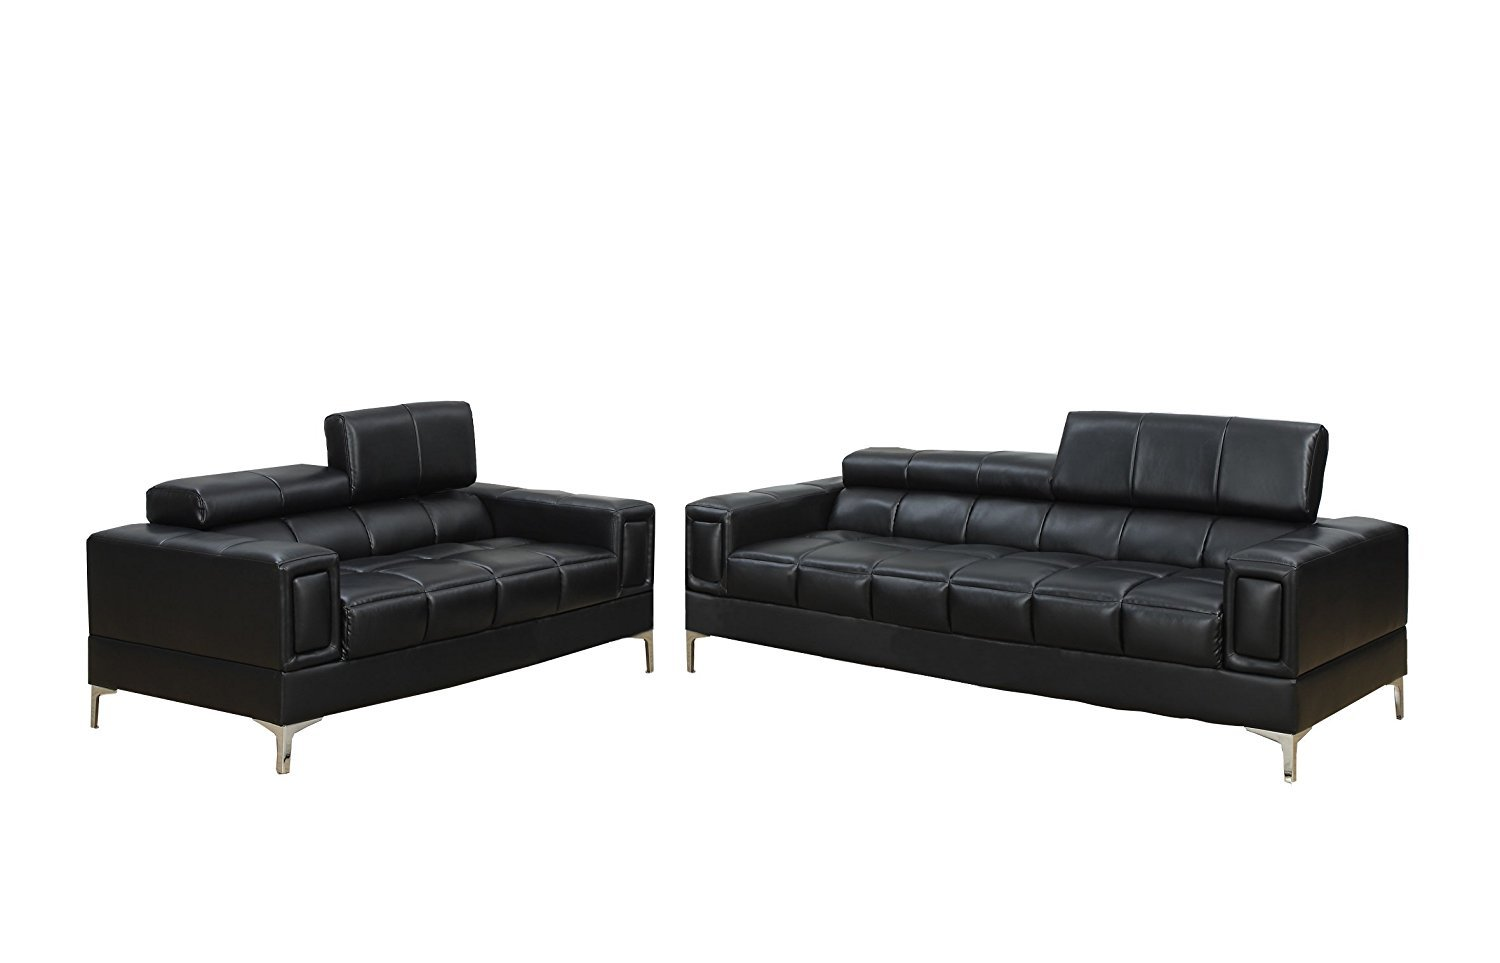 Poundex Bobkona Sierra Bonded 2 Piece Sofa And Loveseat Set Home Furniture Design